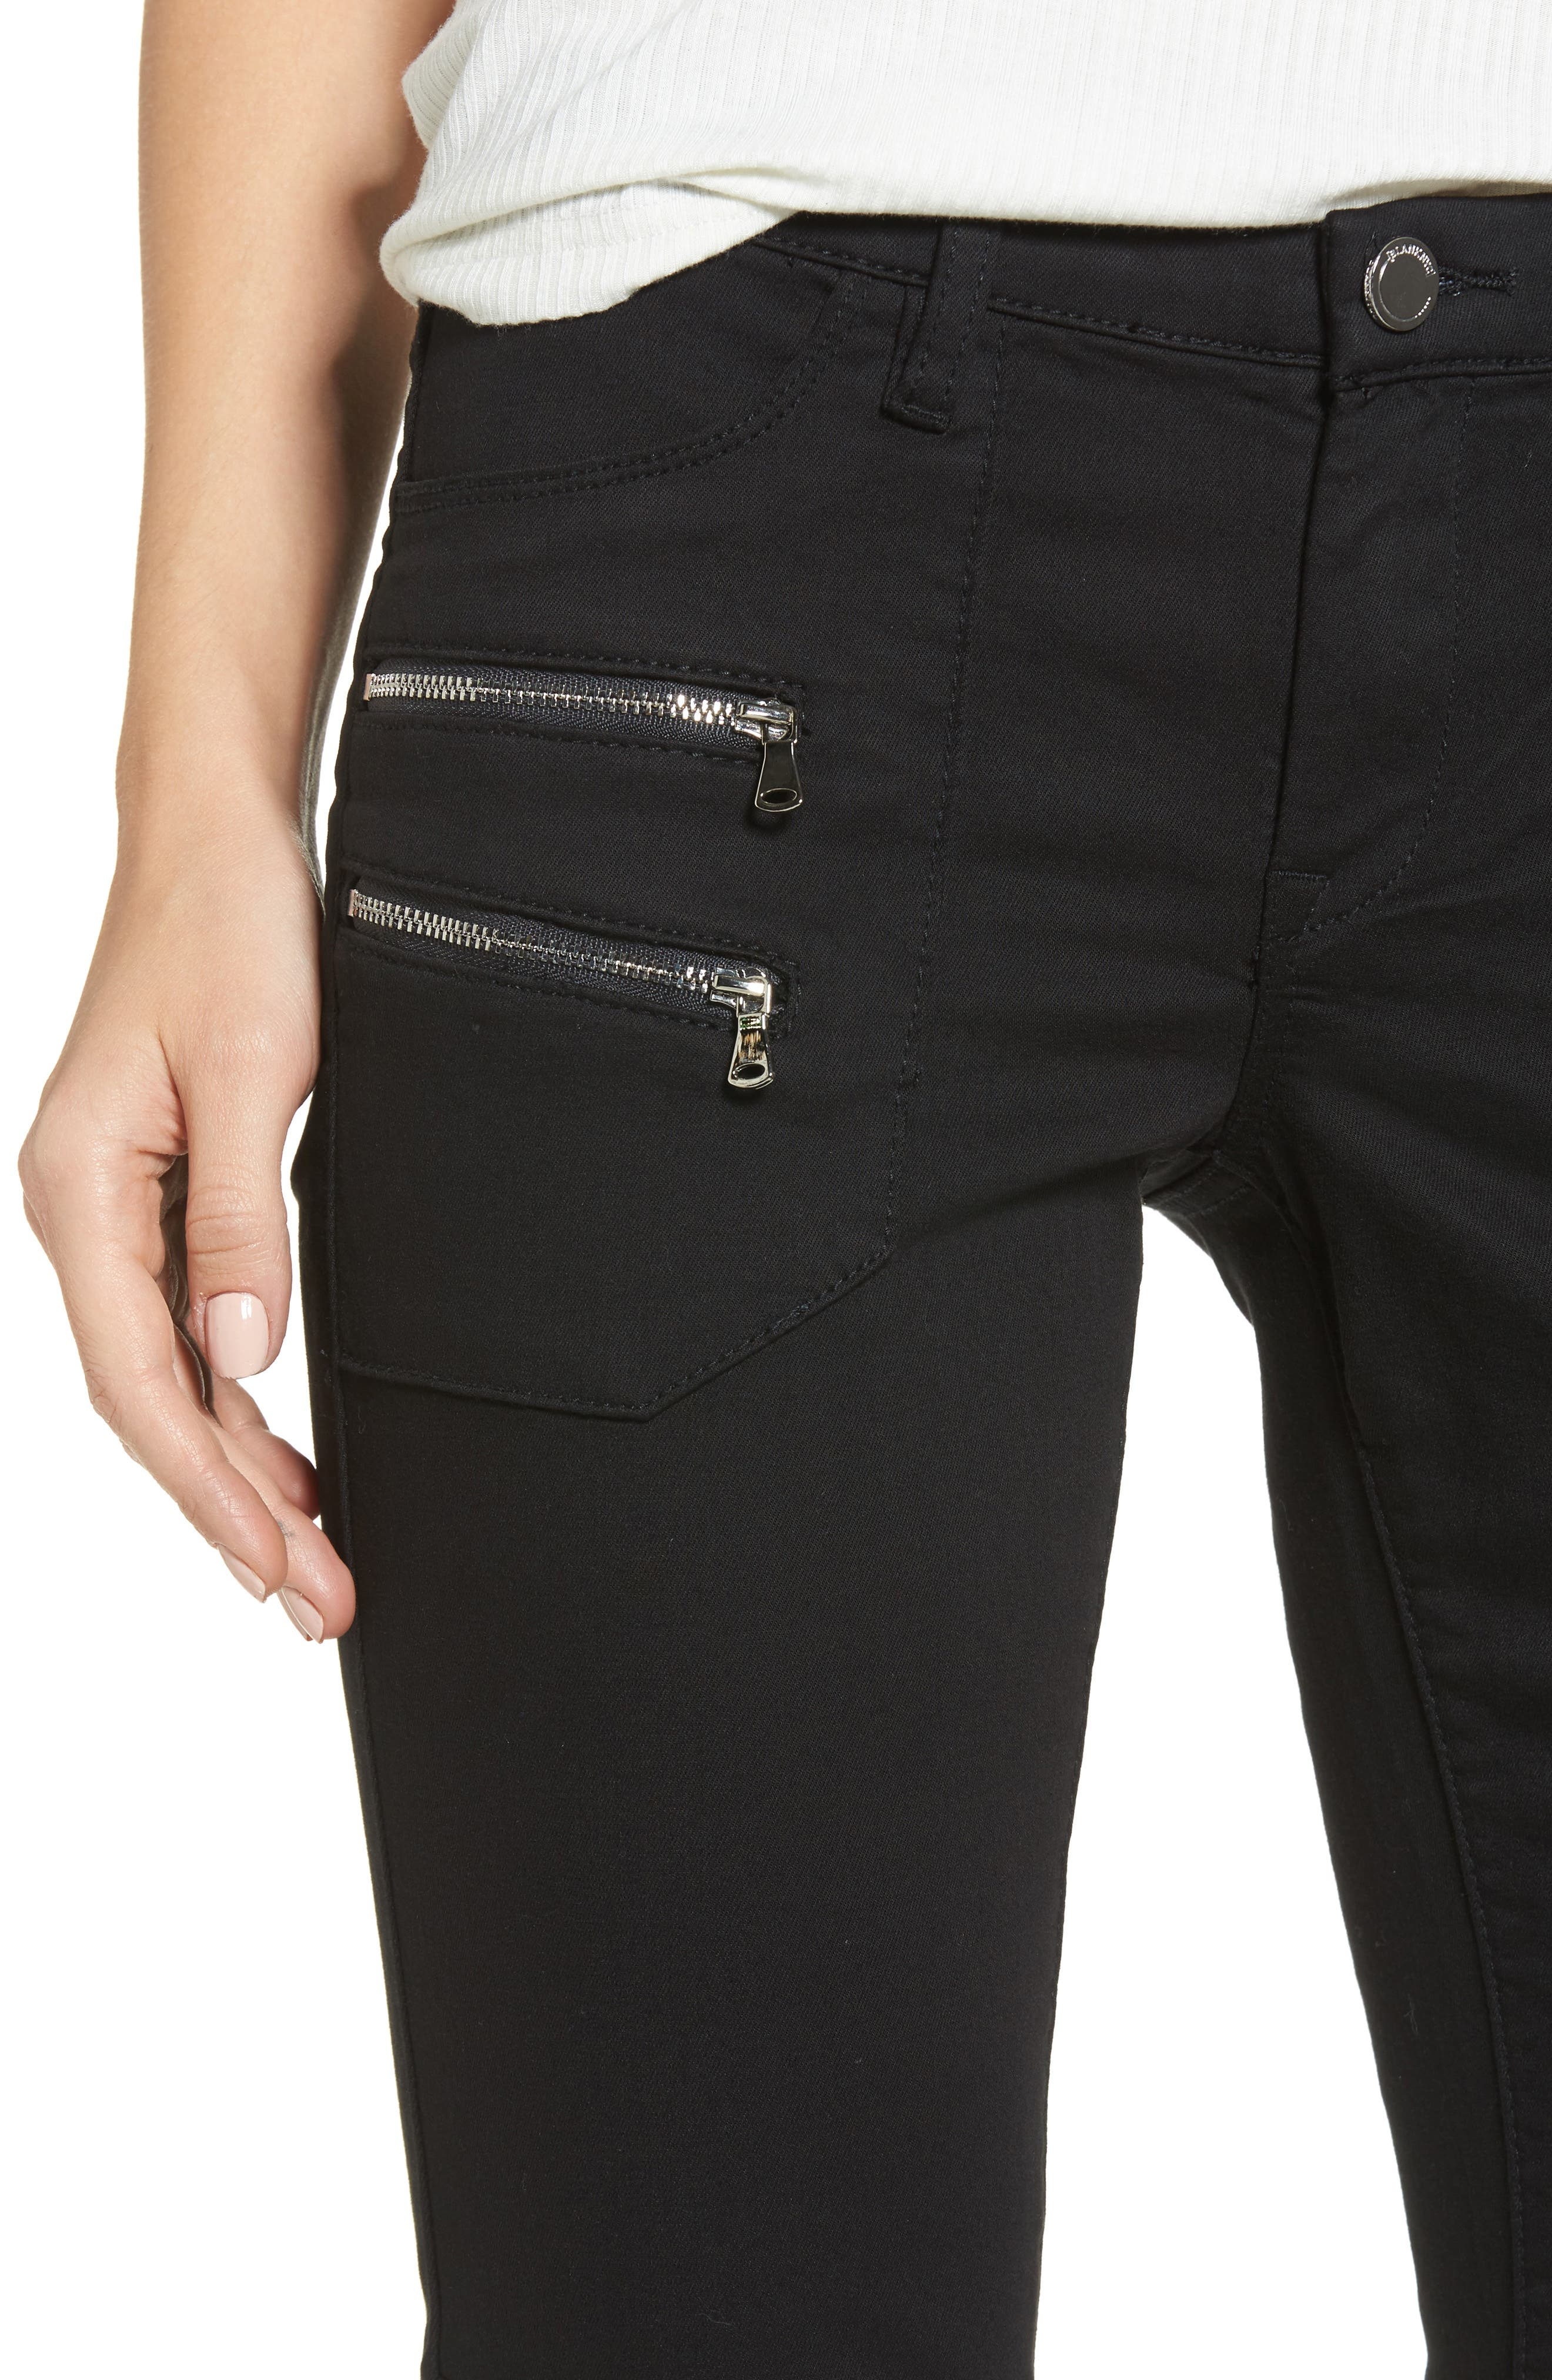 Private Party Skinny Jeans,                             Alternate thumbnail 4, color,                             Black